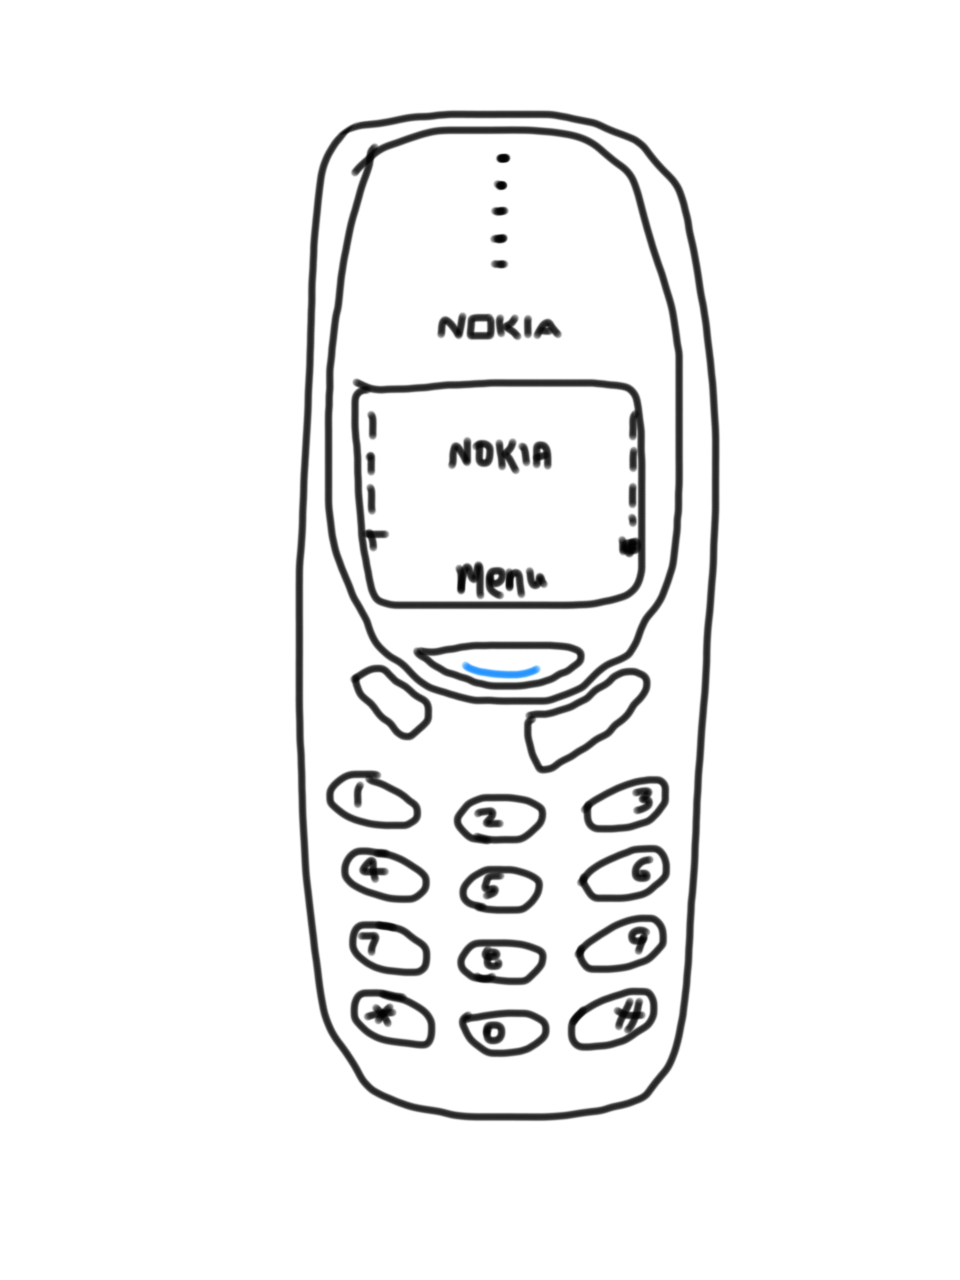 960x1280 The Nokia 3310 Is The Perfect Phone For Mom When The Price Drops